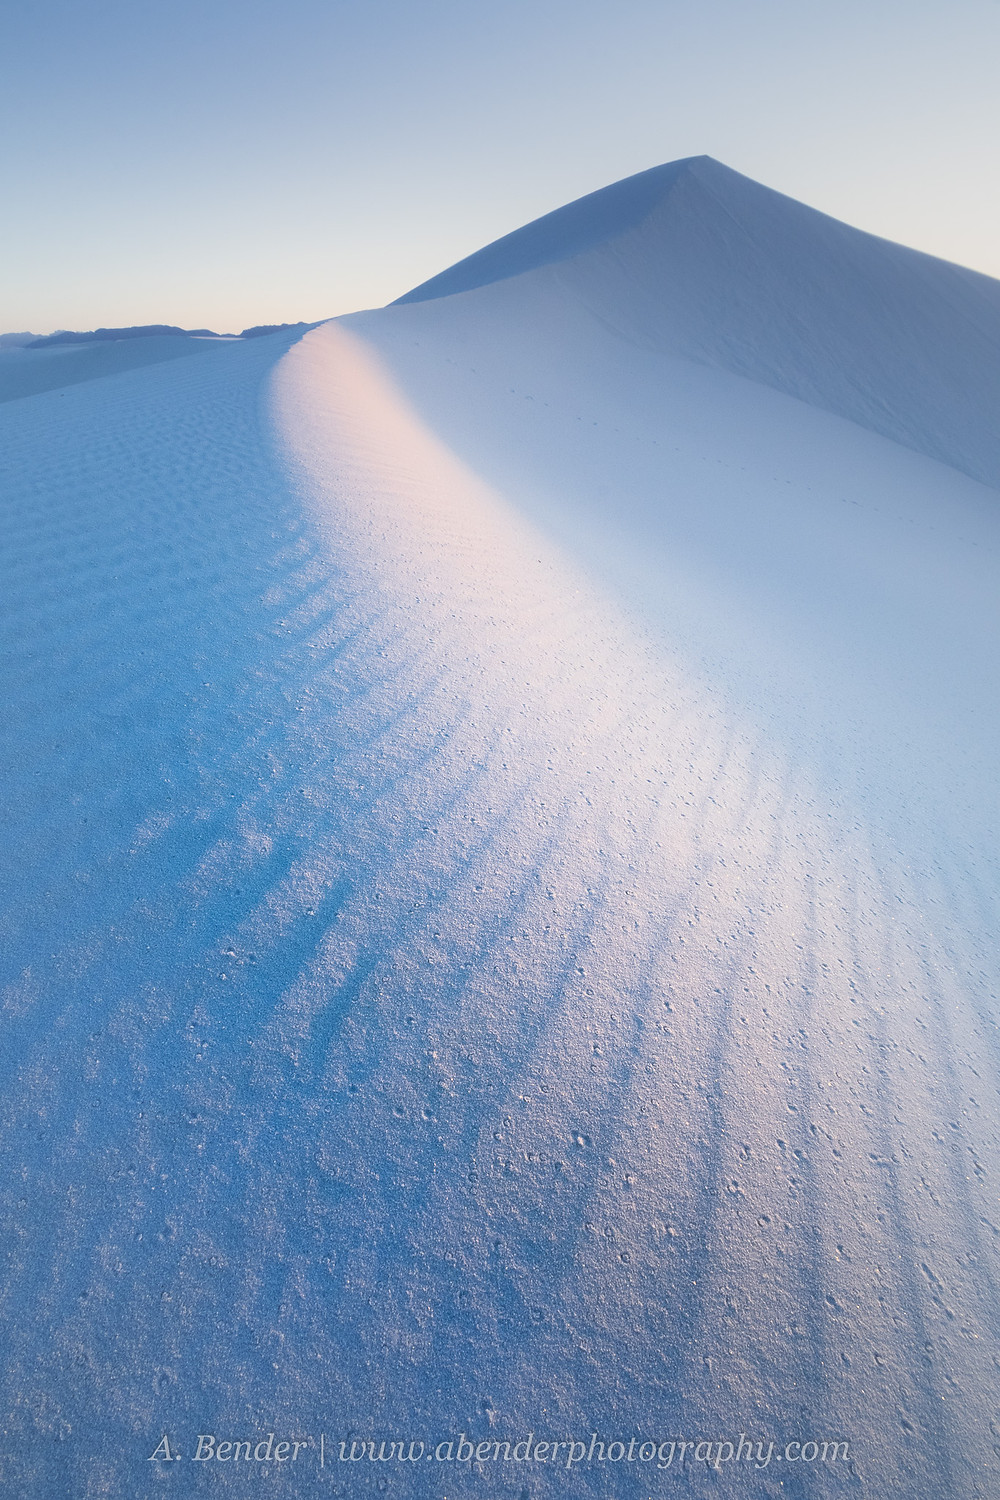 Gypsum sand dune reflecting blue skies at White Sands National Park at sunset   A Bender Photography LLC